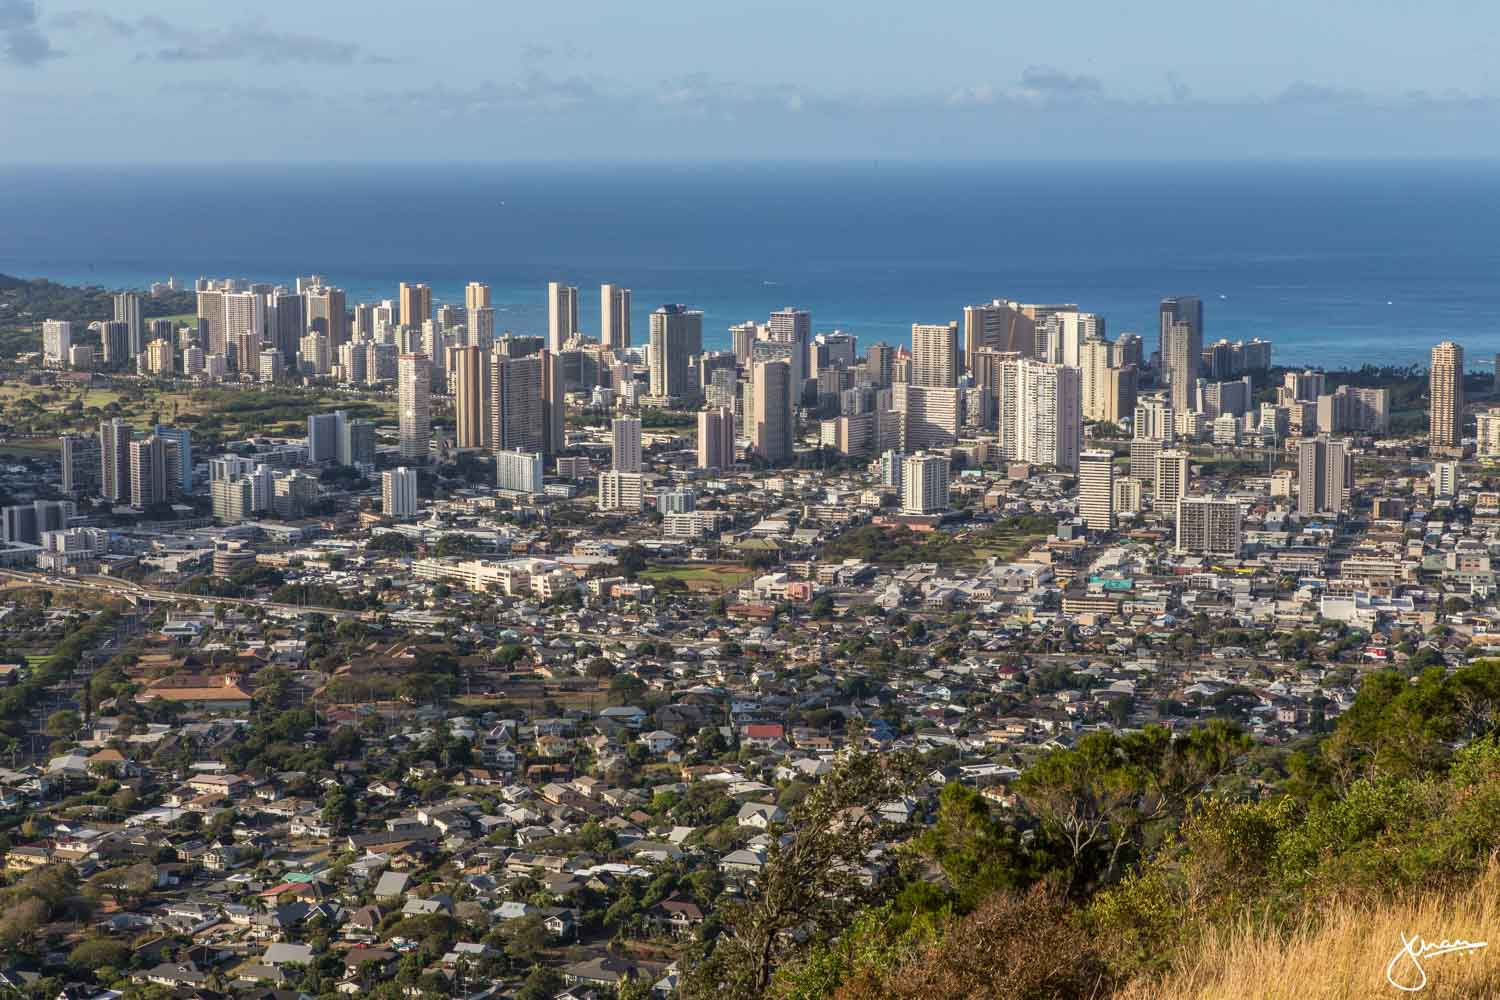 Pu'u 'Ualaka'a State Park - Looking towards Waikiki, Downtown, & Honolulu